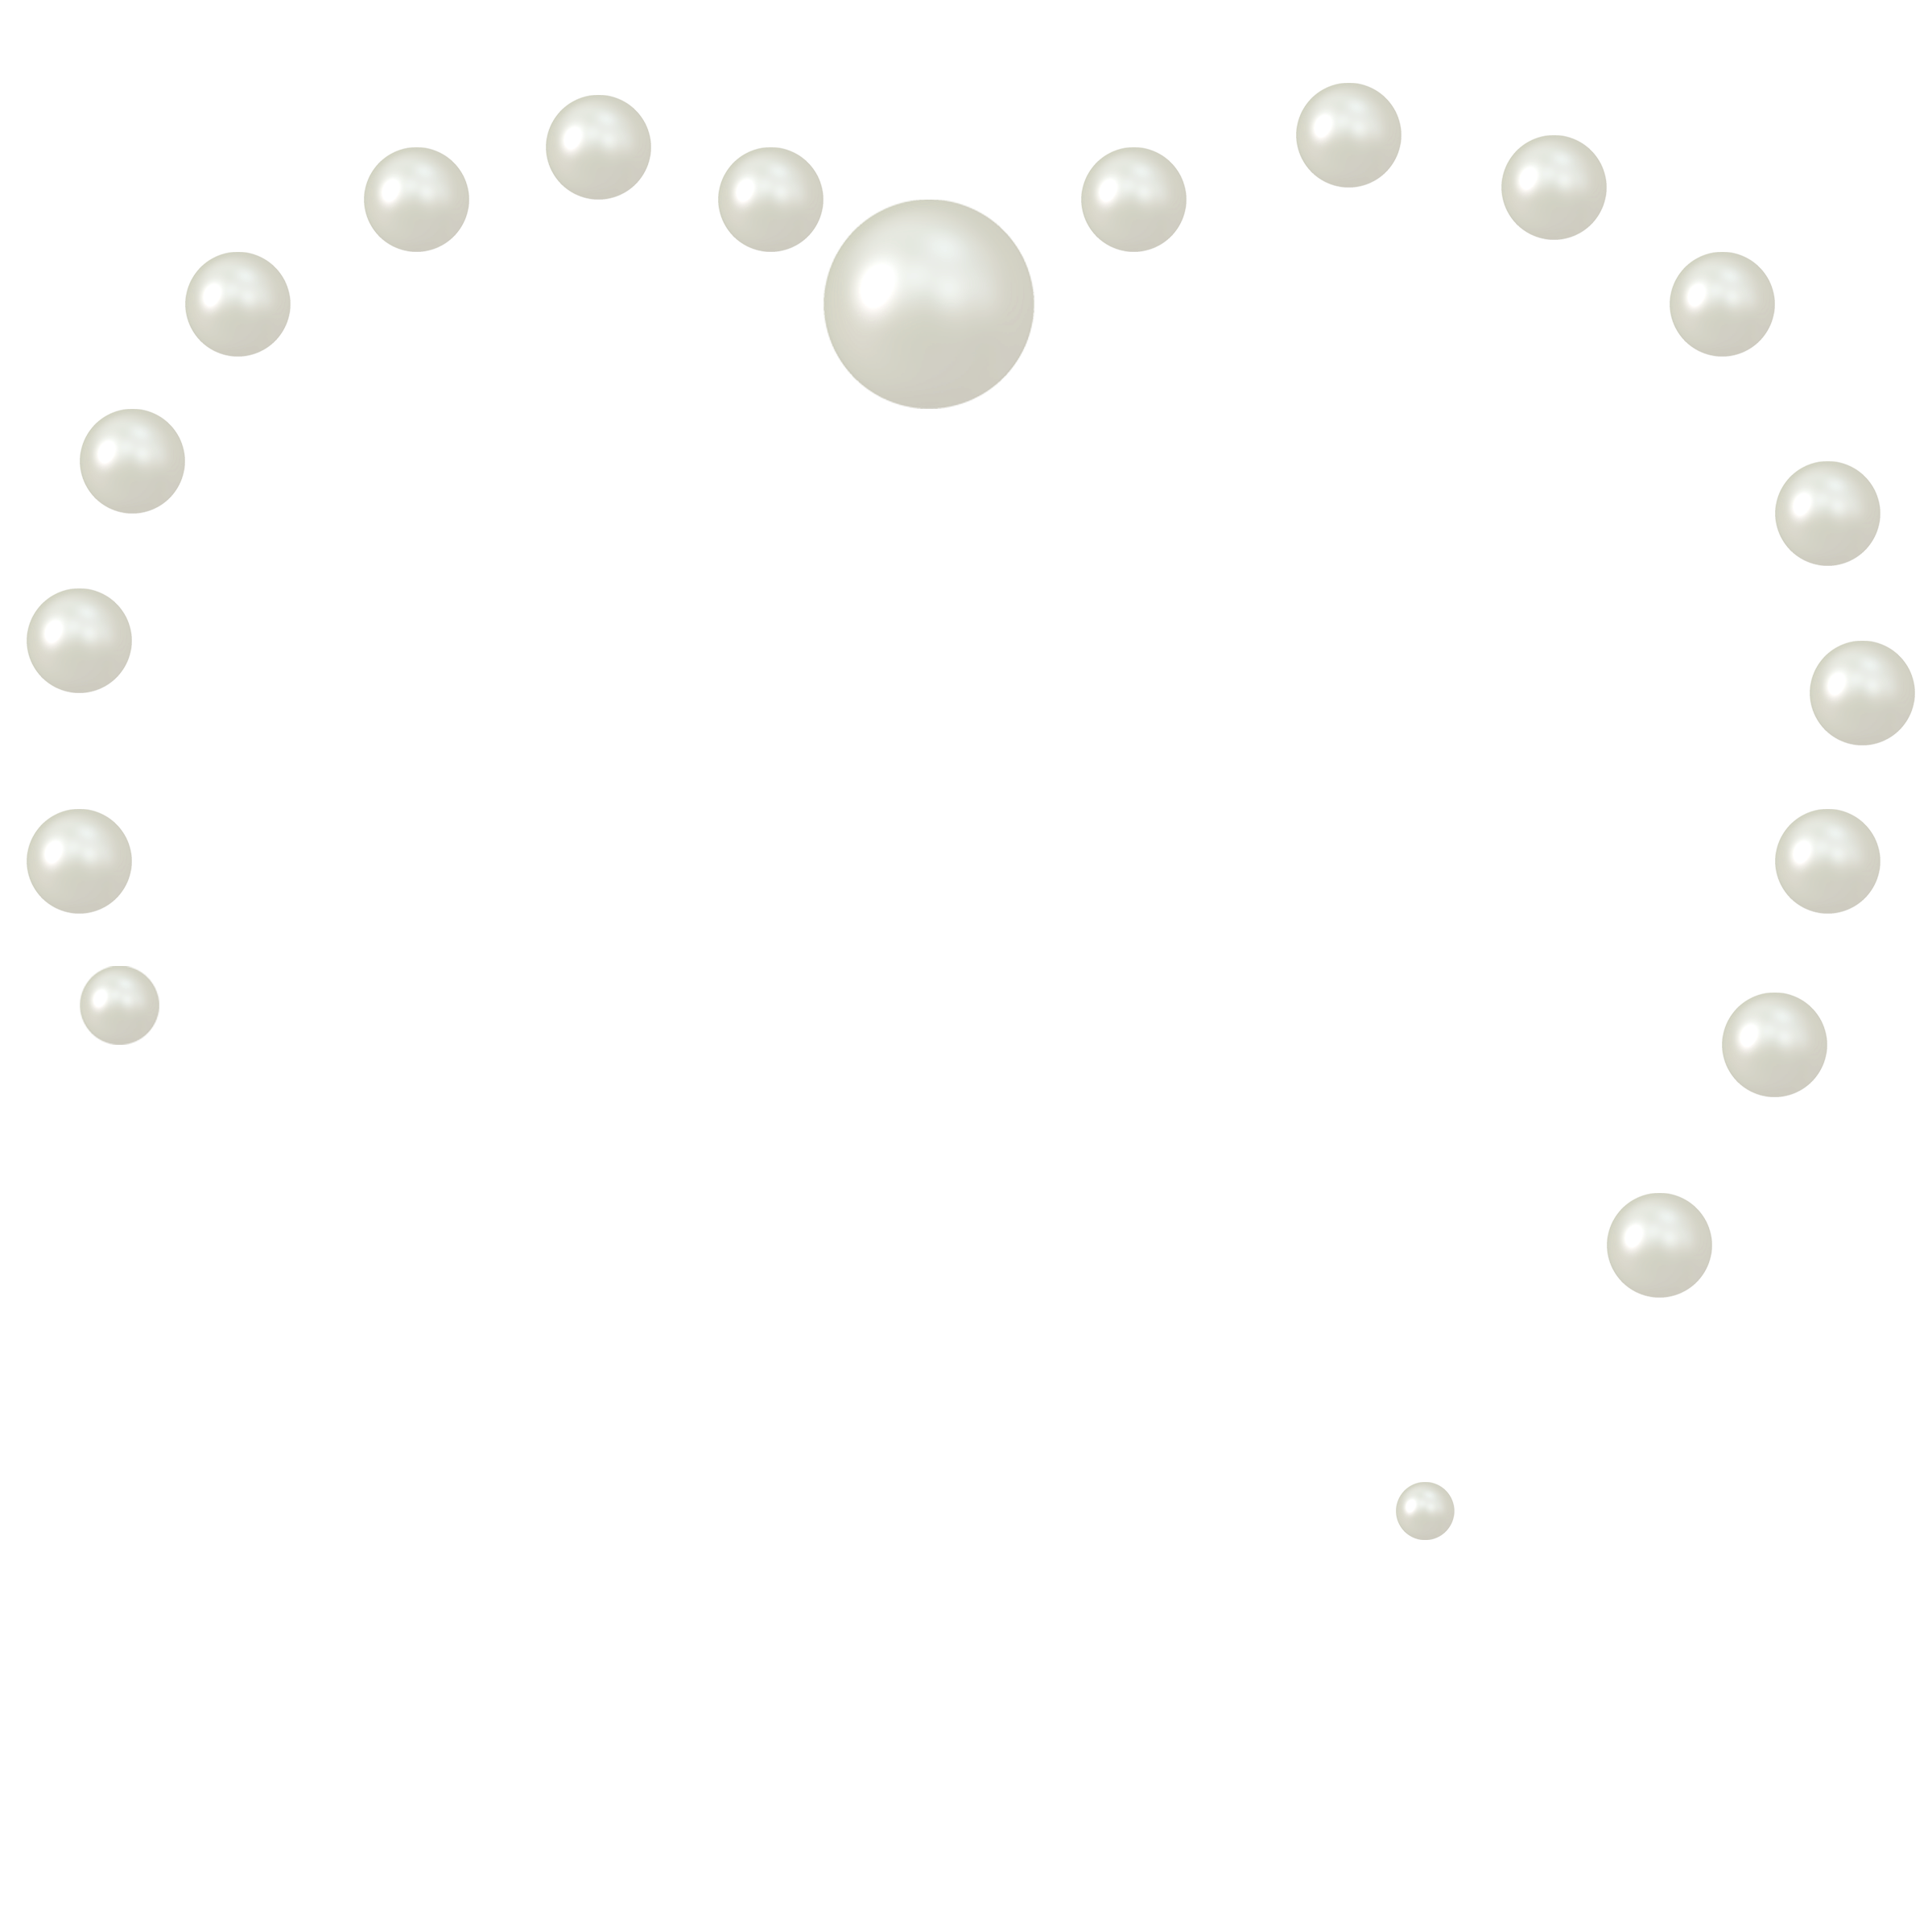 pearls clipart huge. Pearl border png